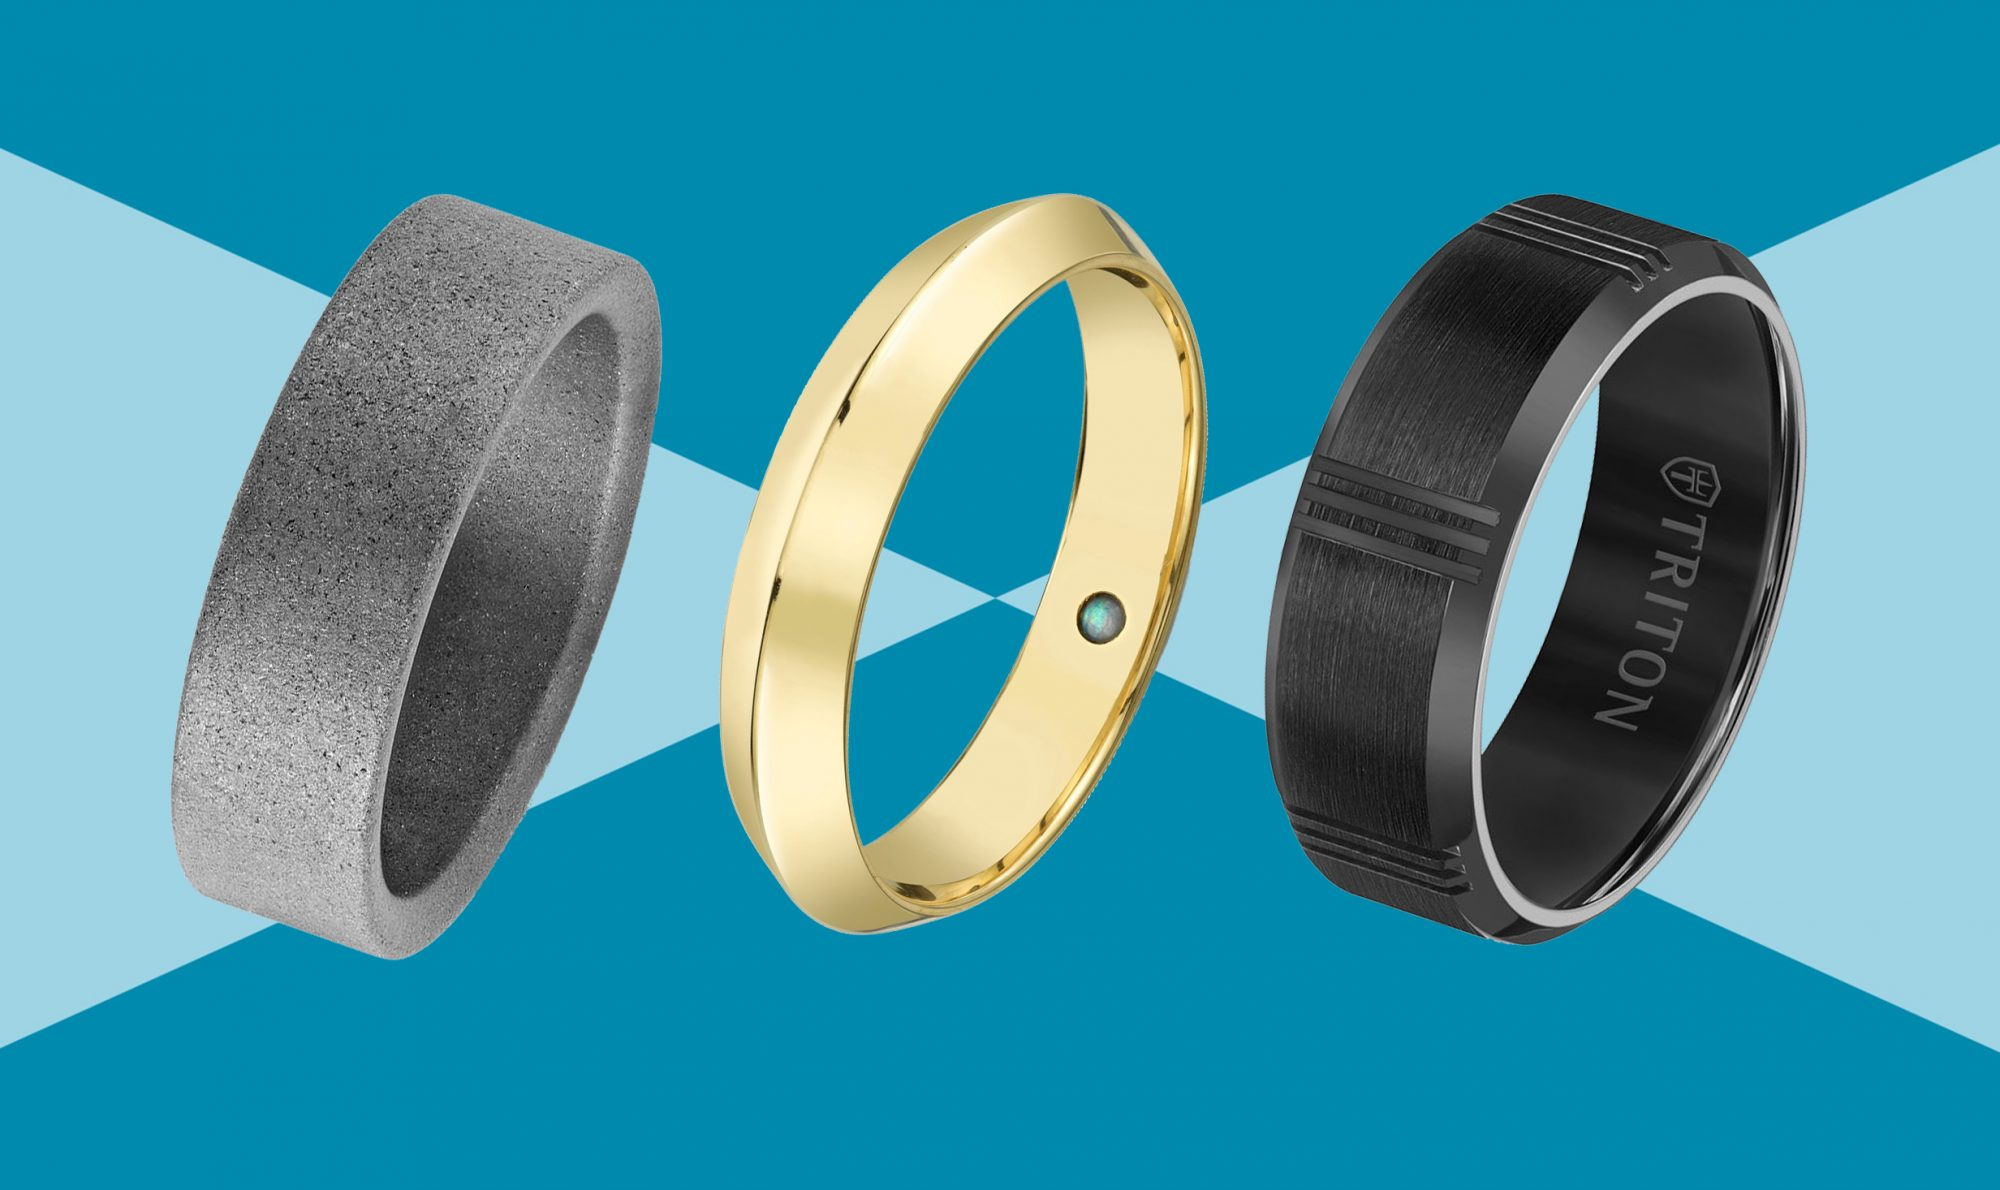 Wedding gift for him Men/'s Black Silicone Wedding Ring  Band Extremely Durable  Made for Work /& Play